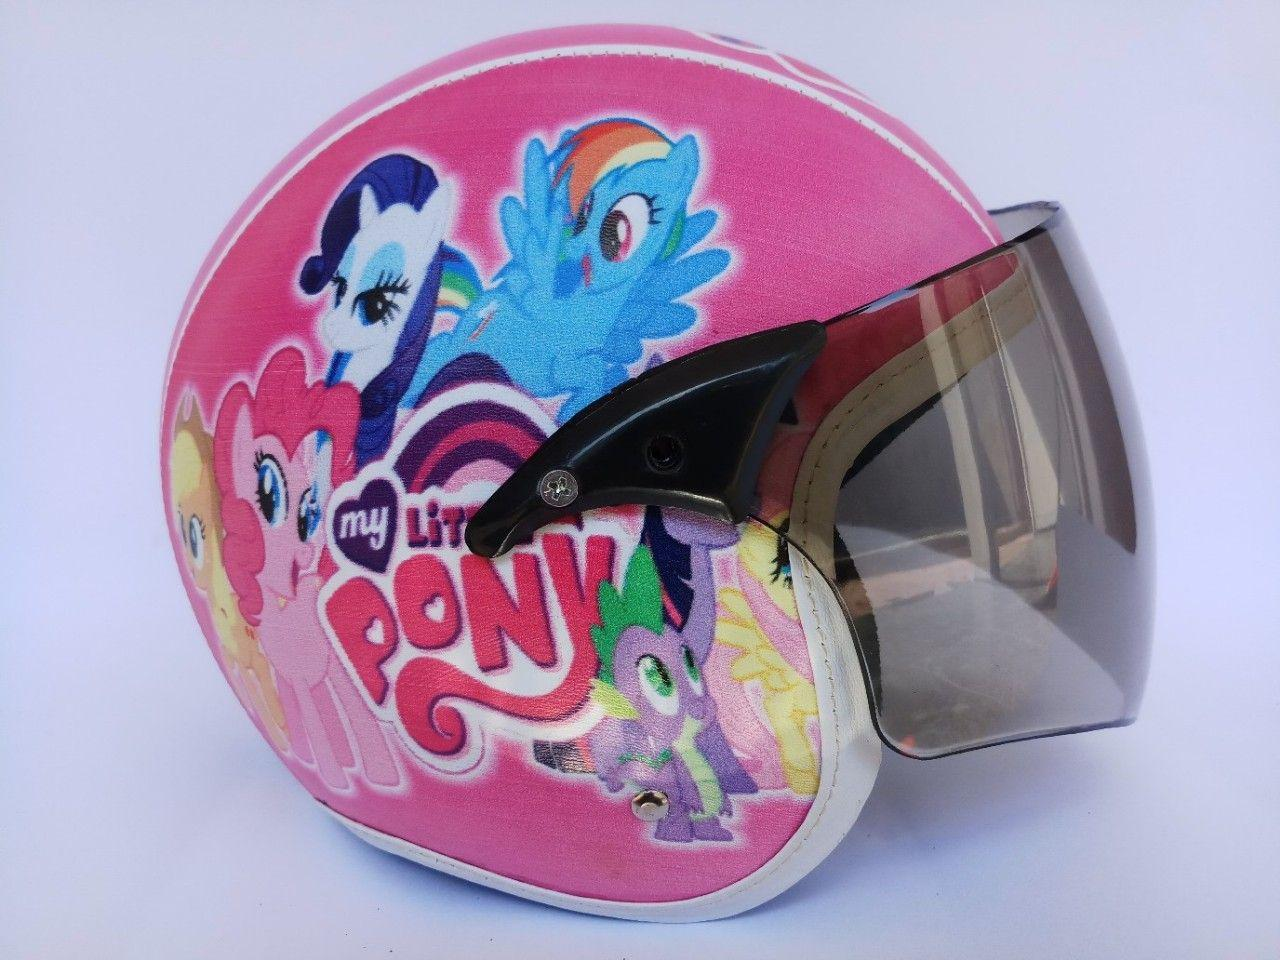 Helm anak kaca standar (little pony)